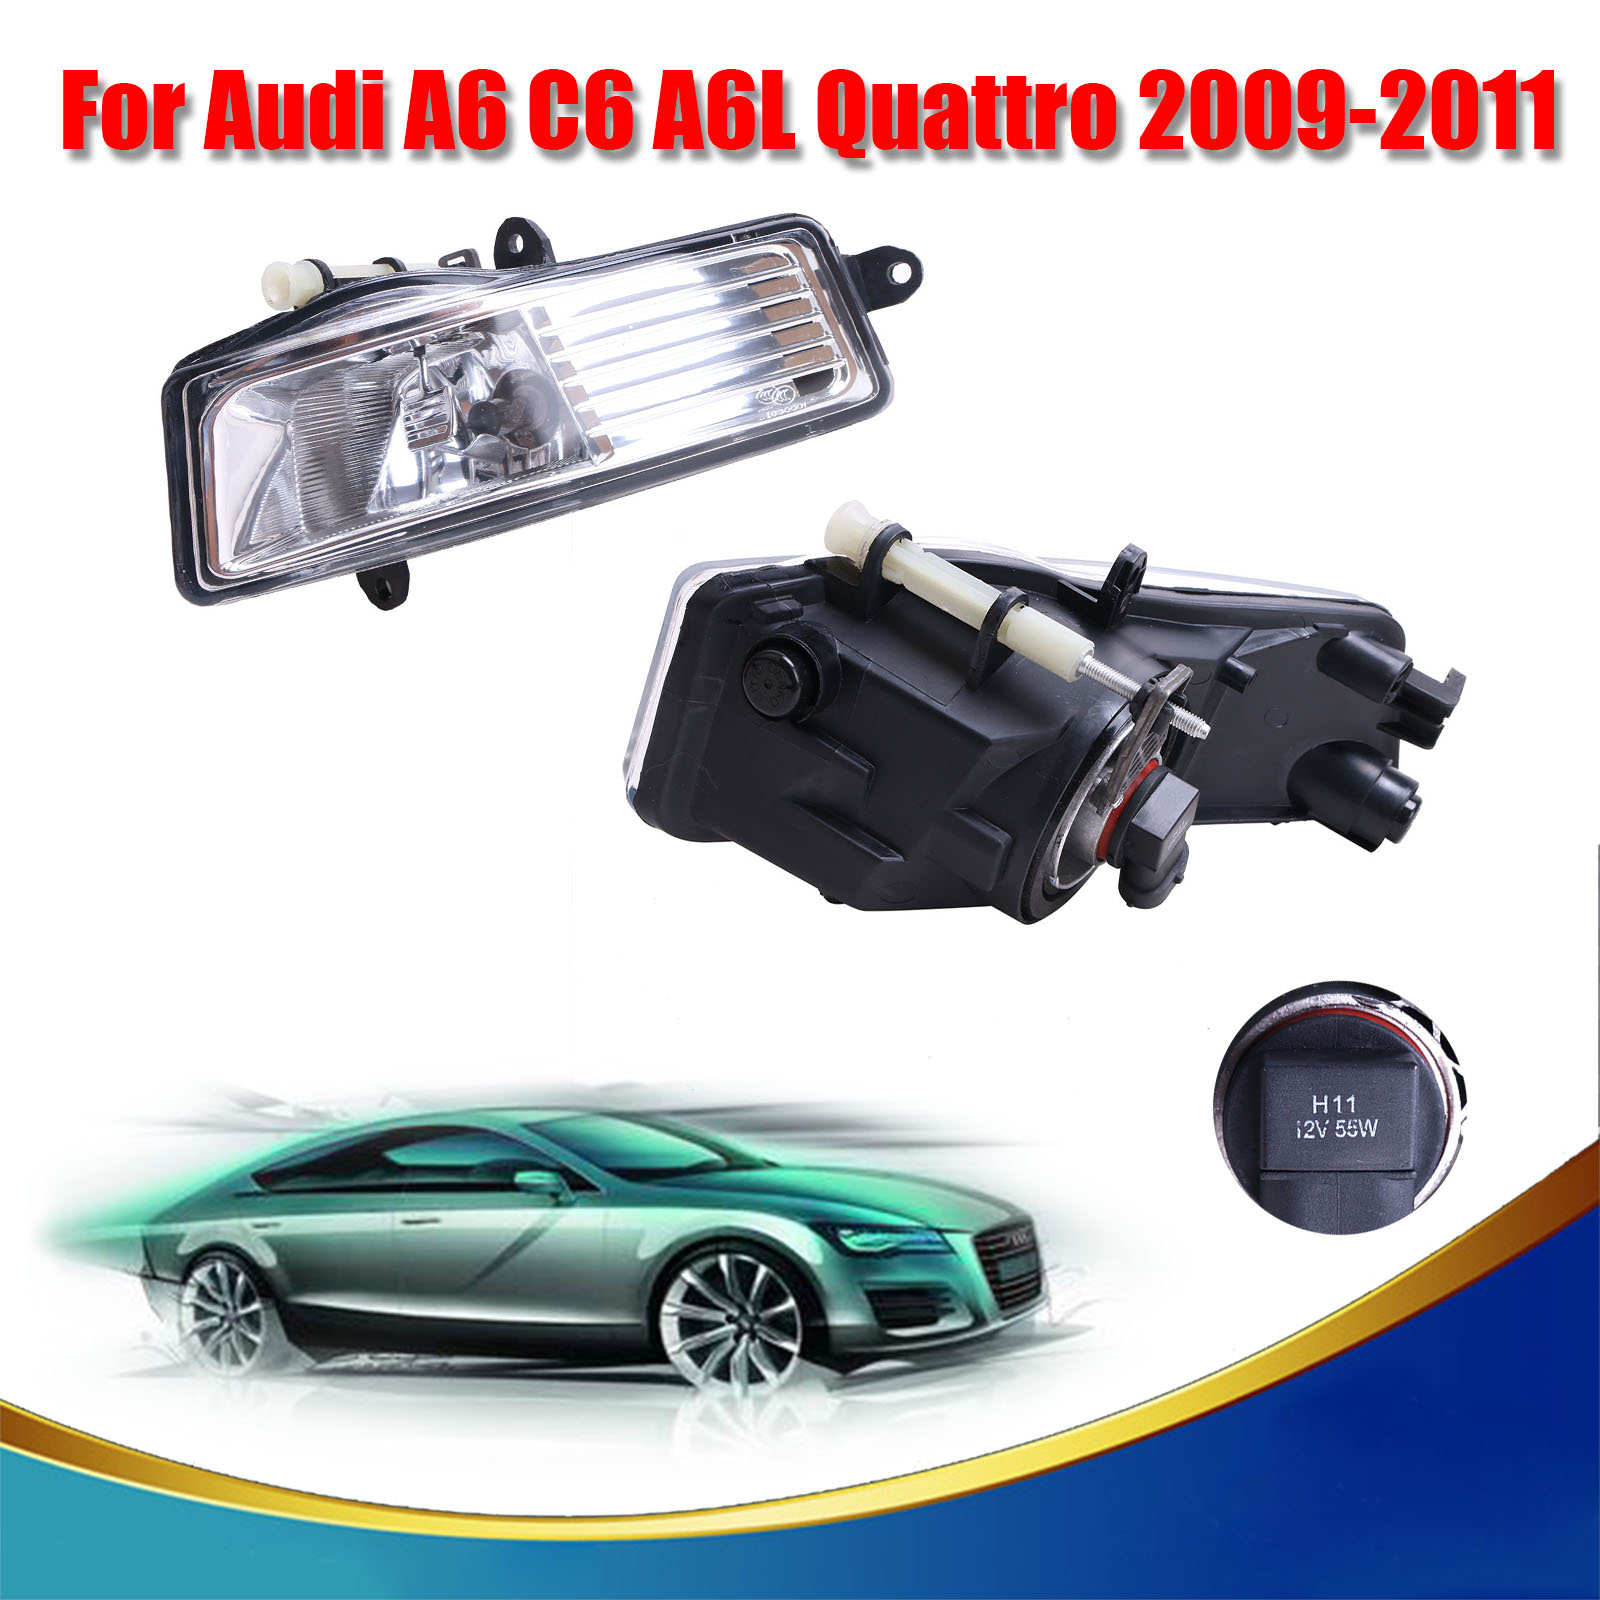 OEM 4FD941699A 4FD9416700A 2x Front Fog Light Lamp Set For Audi A6 C6 A6L Quattro 2009 2010 2011 // hot sale abs chromed front behind fog lamp cover 2pcs set car accessories for volkswagen vw tiguan 2010 2011 2012 2013